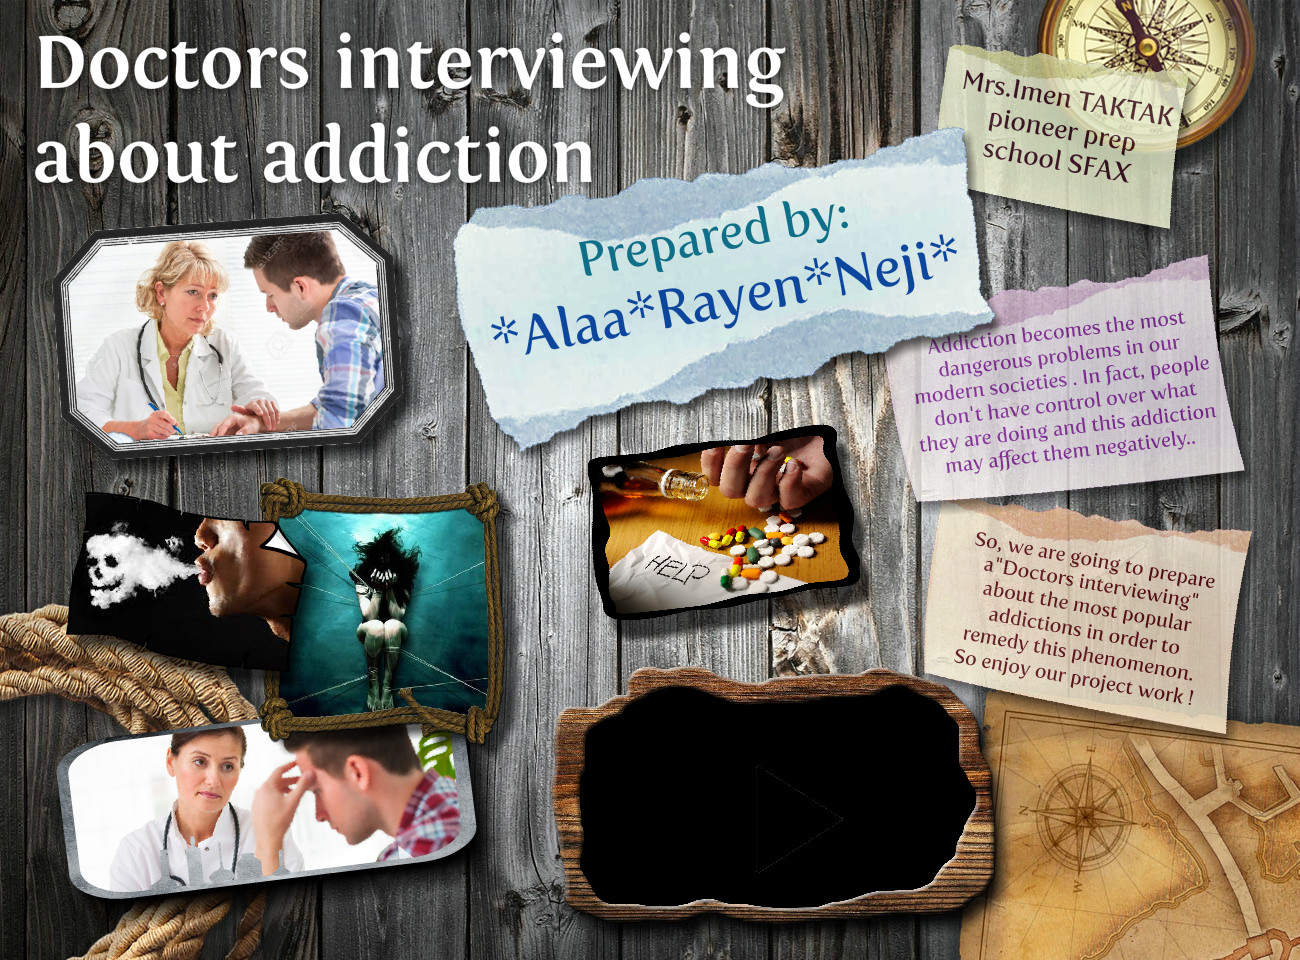 Doctors interviewing about addiction